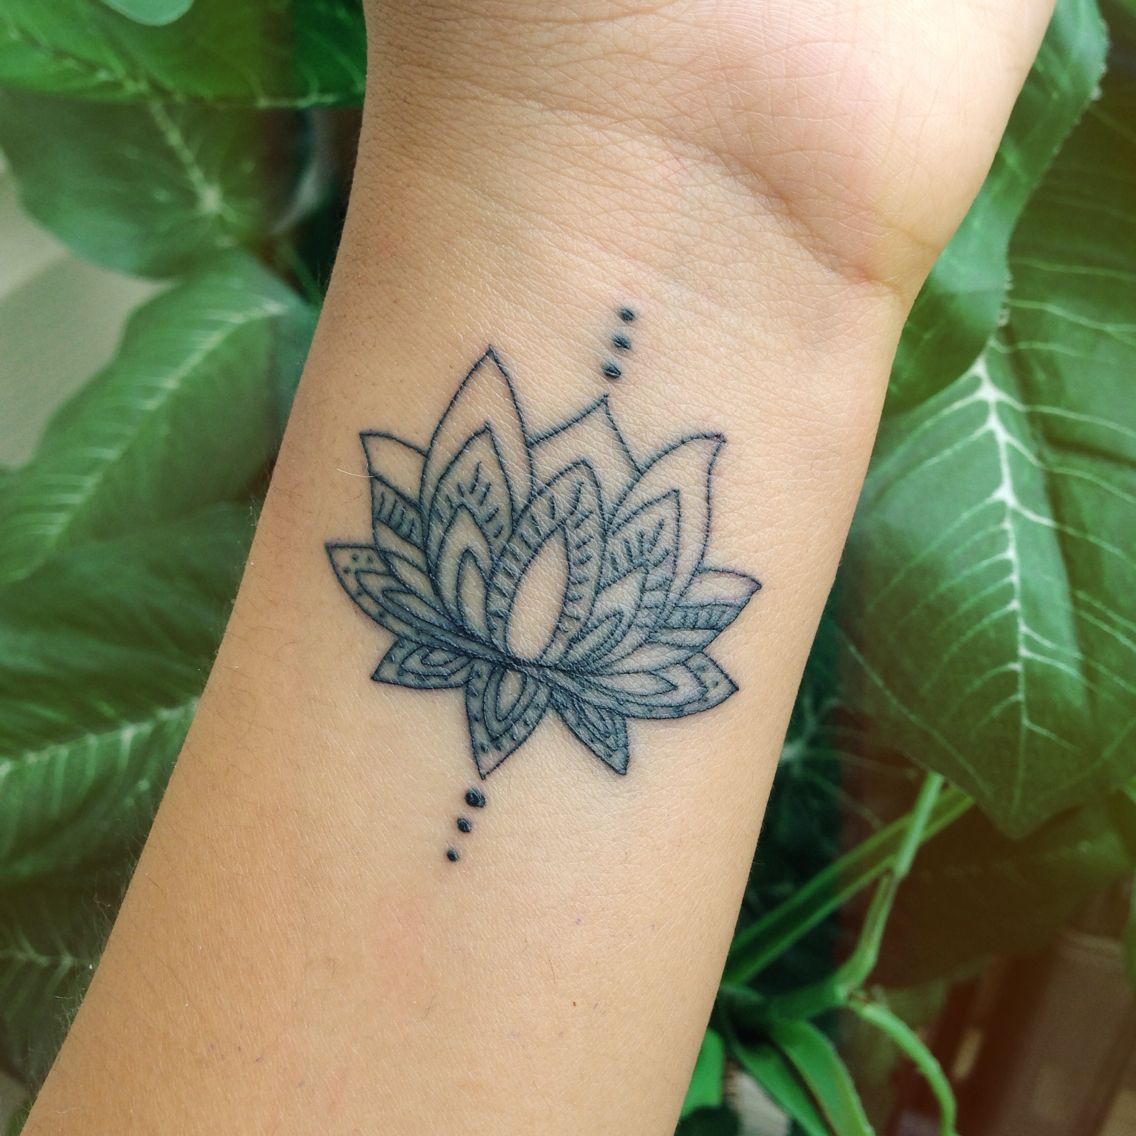 40 Awesome Wrist Tattoo Ideas For Inspiration Ink Tattoos